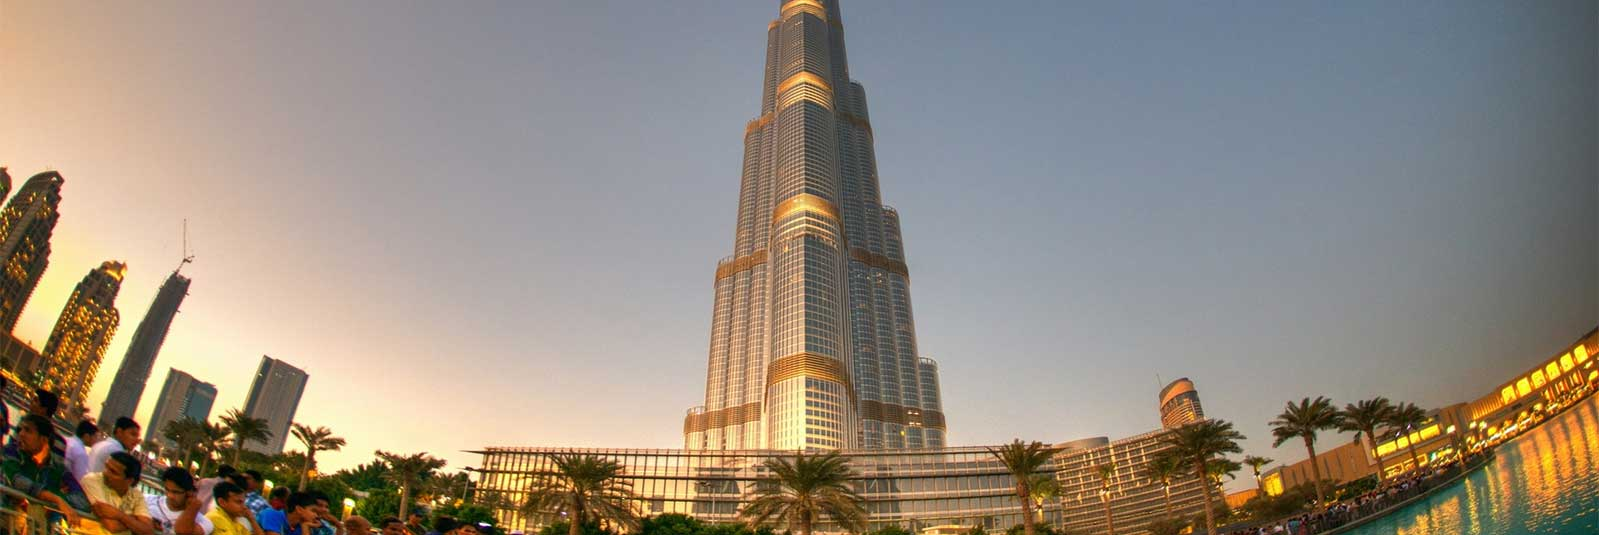 Burj-Khalifa-tallest-building-in-dubai